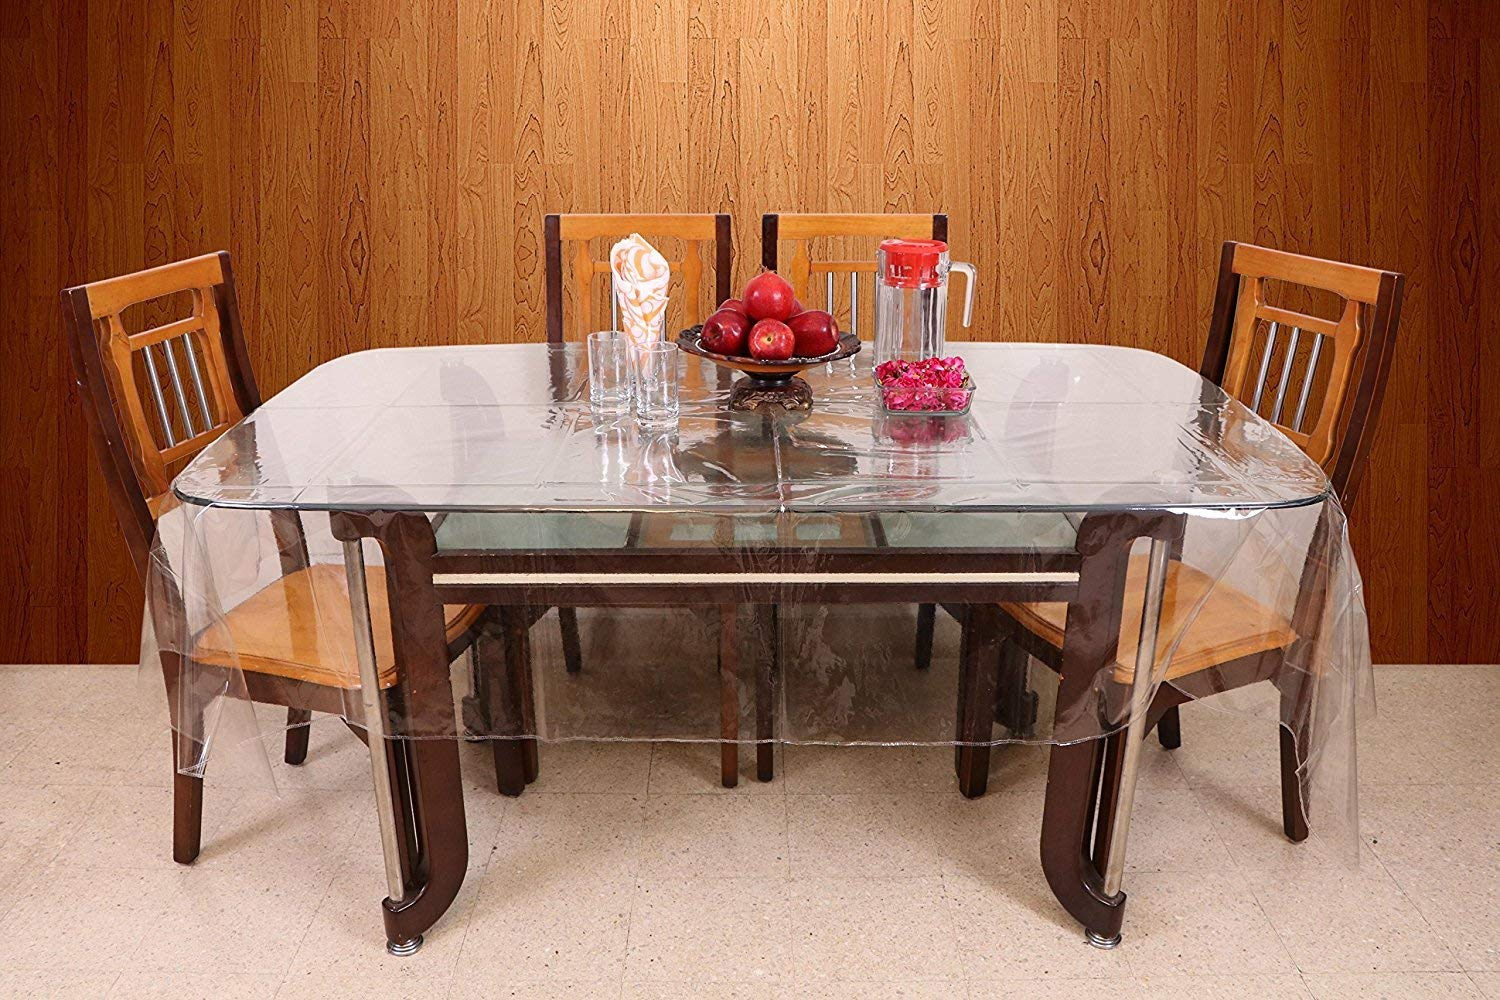 10 Seater Kitchen Table Cheap 10 Seater Dining Table Find 10 Seater Dining Table Deals On